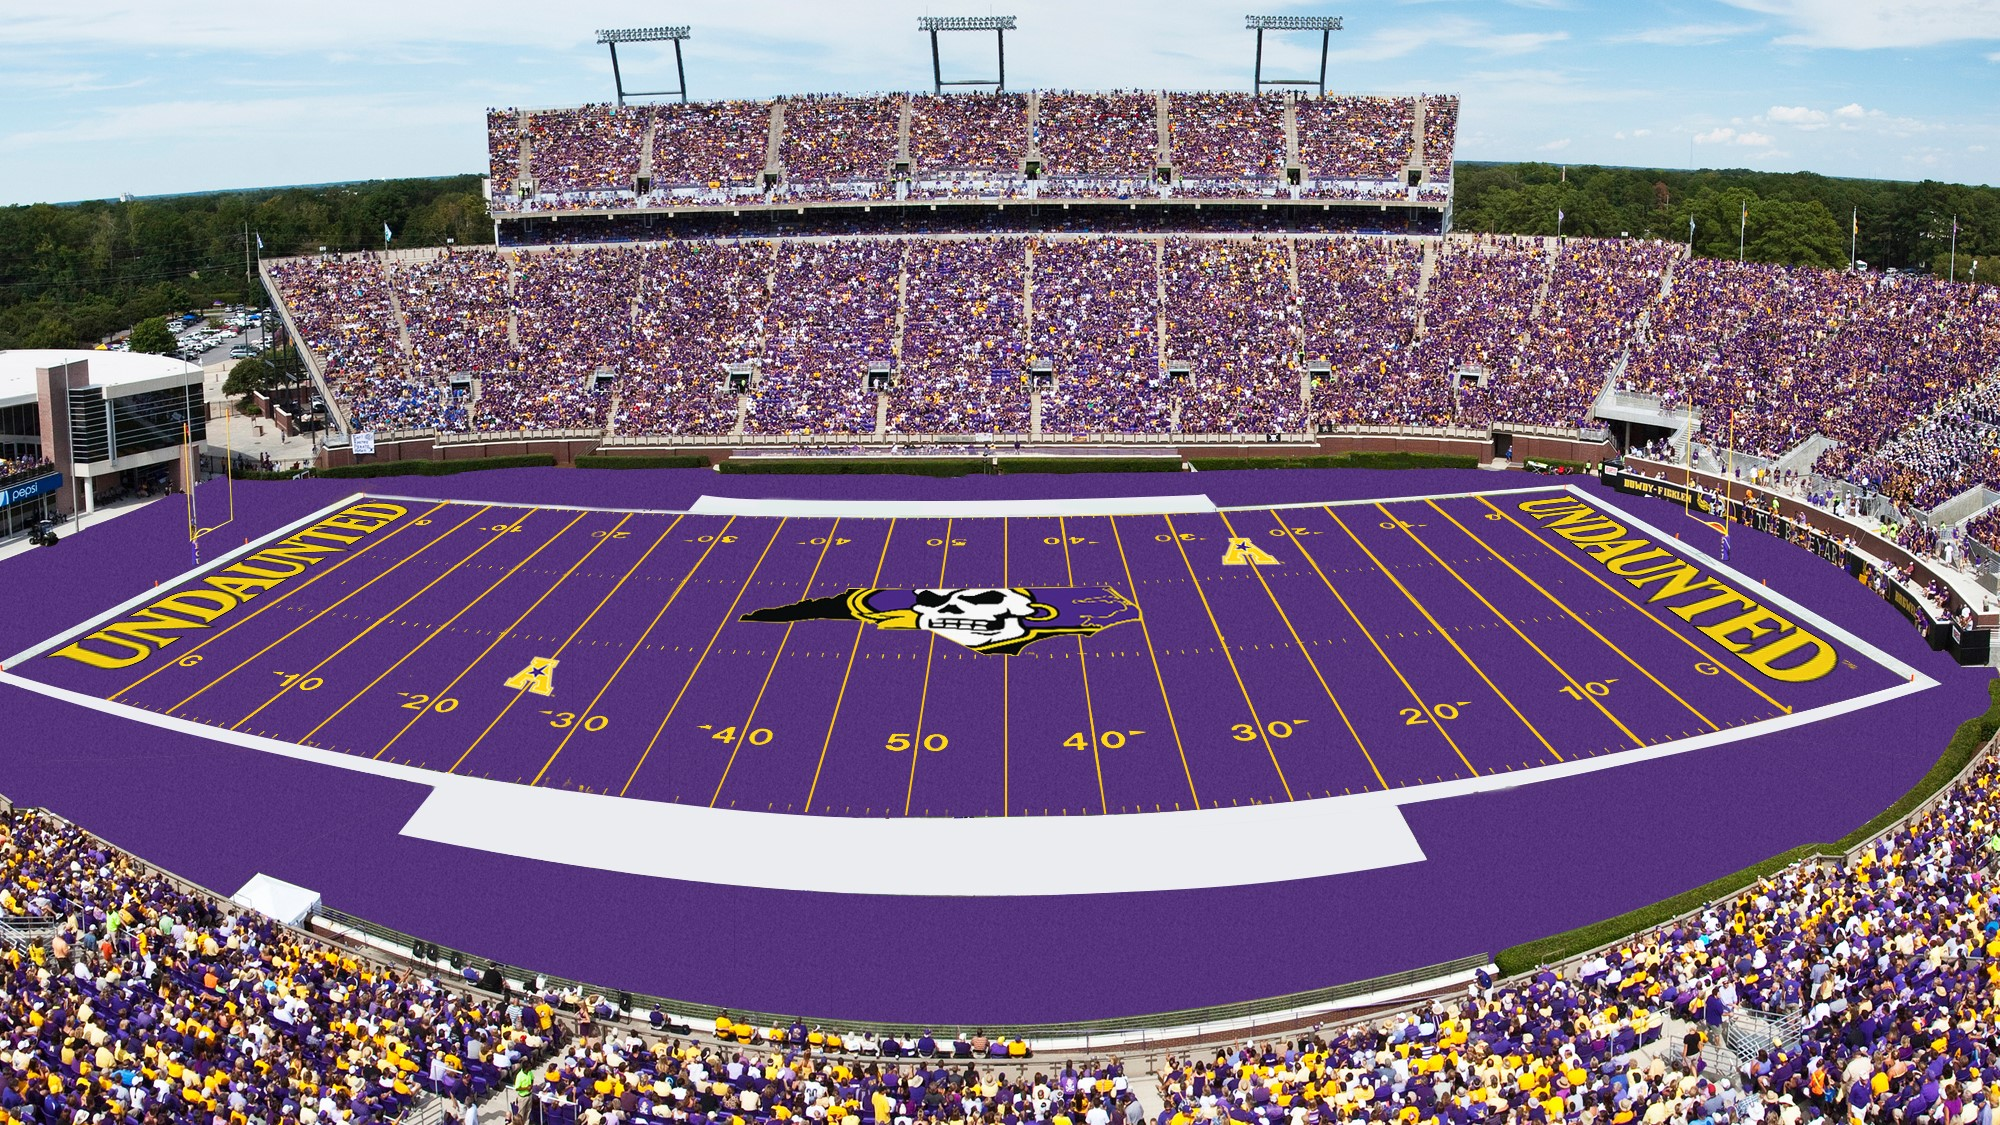 94230e659 Bagwell Field  Paint It Purple! - East Carolina University Athletics